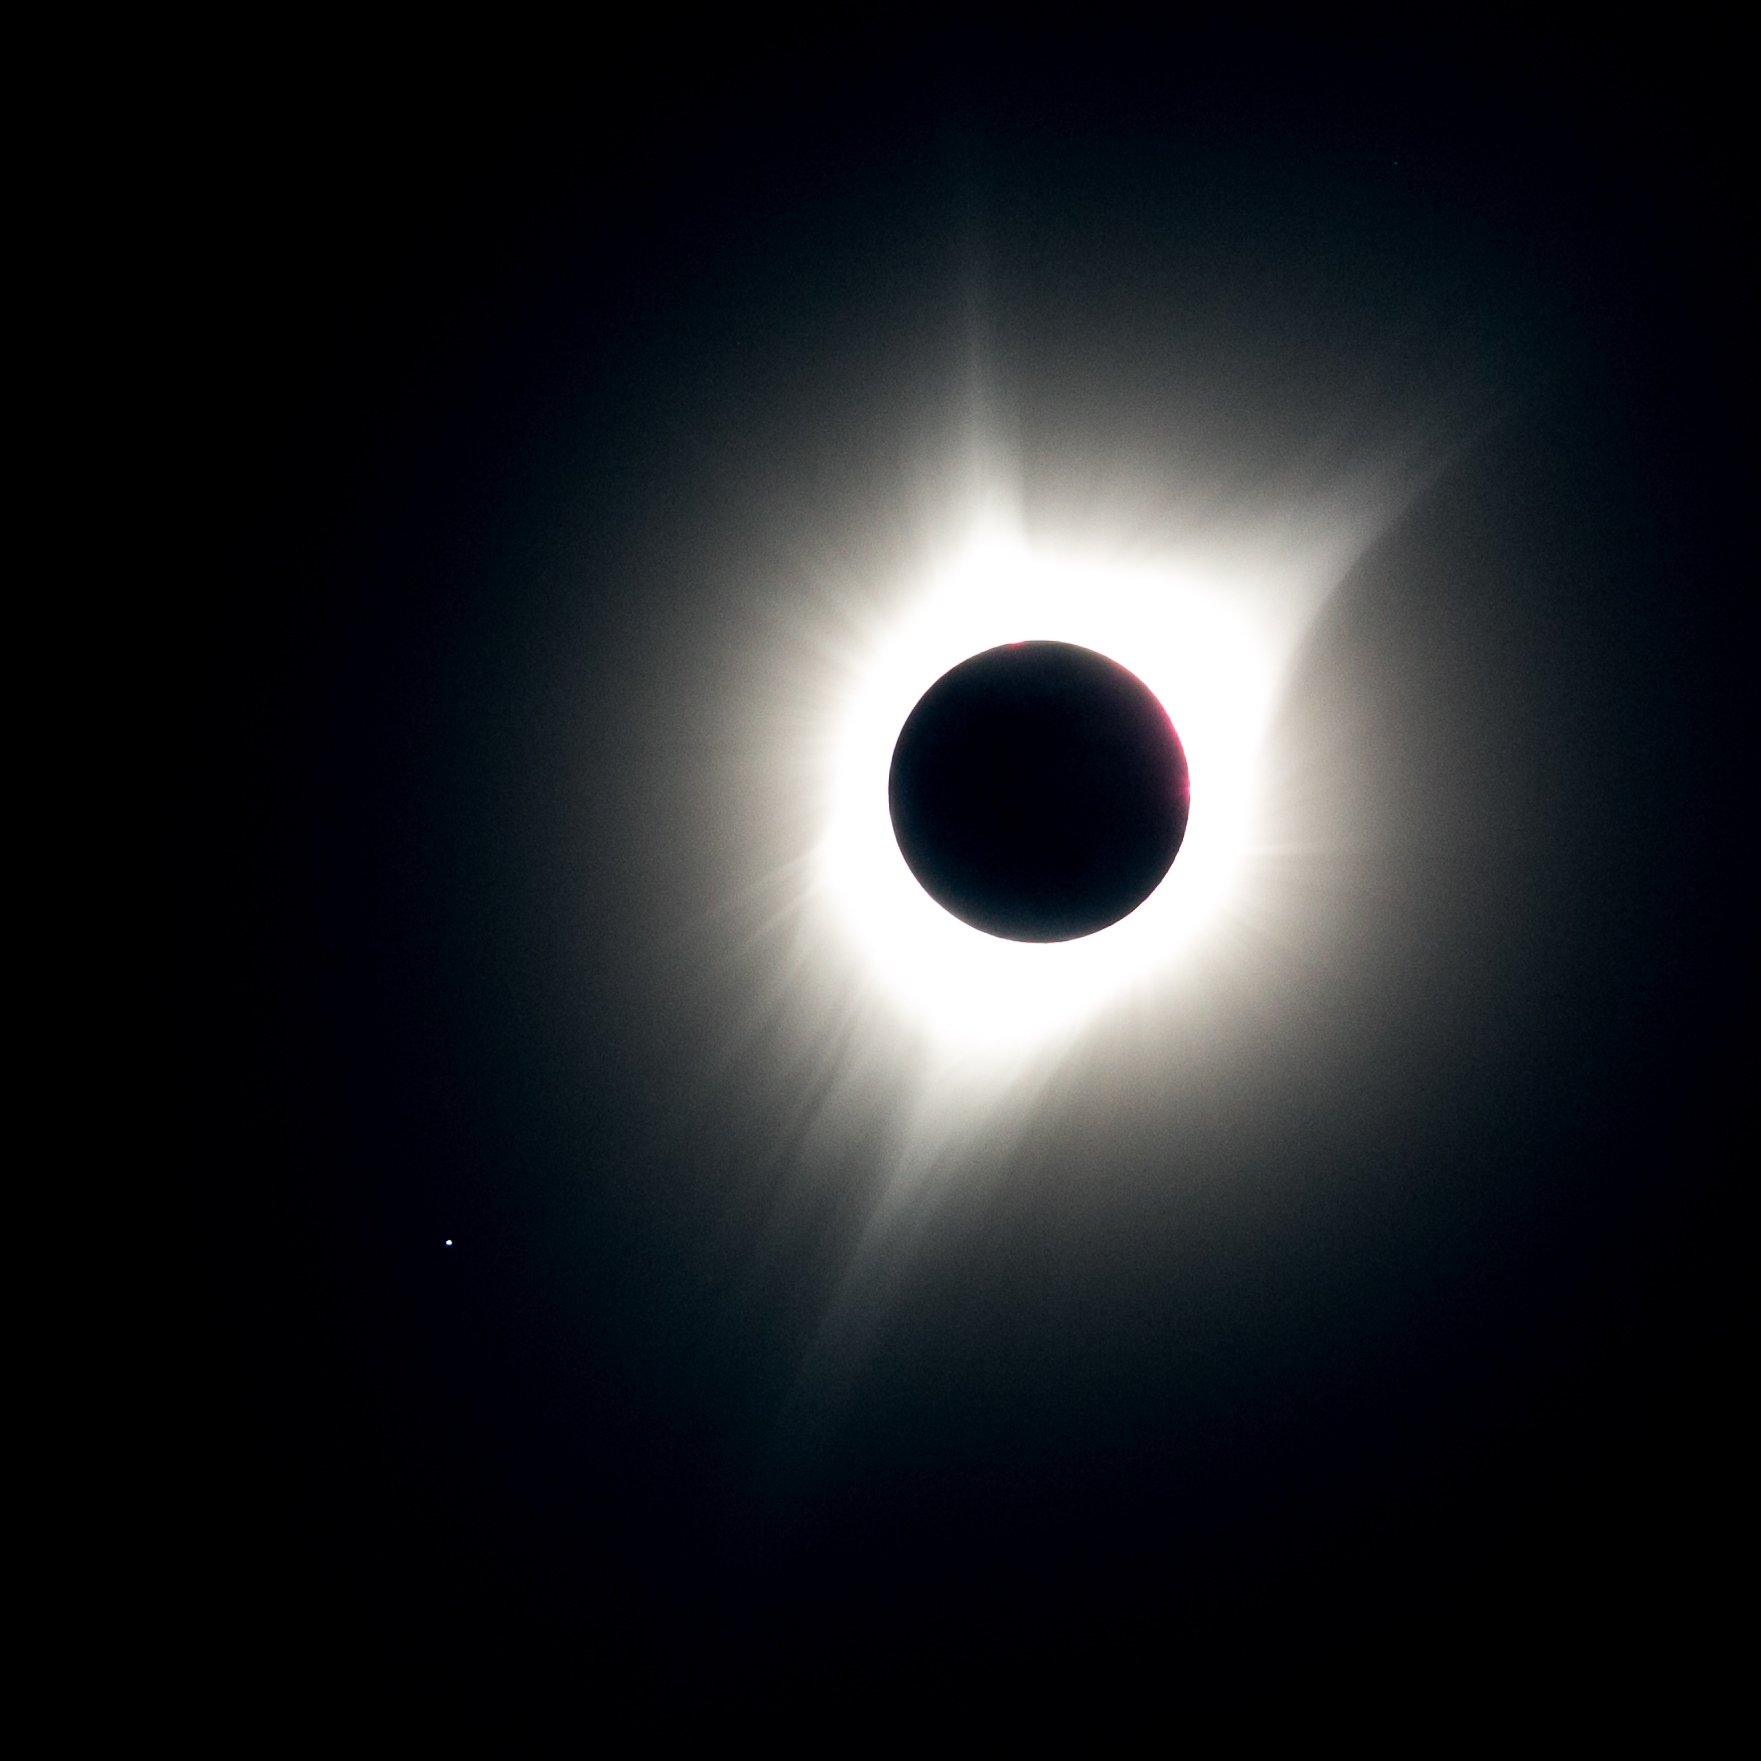 Timelapse captures moment sky darkens for total solar eclipse